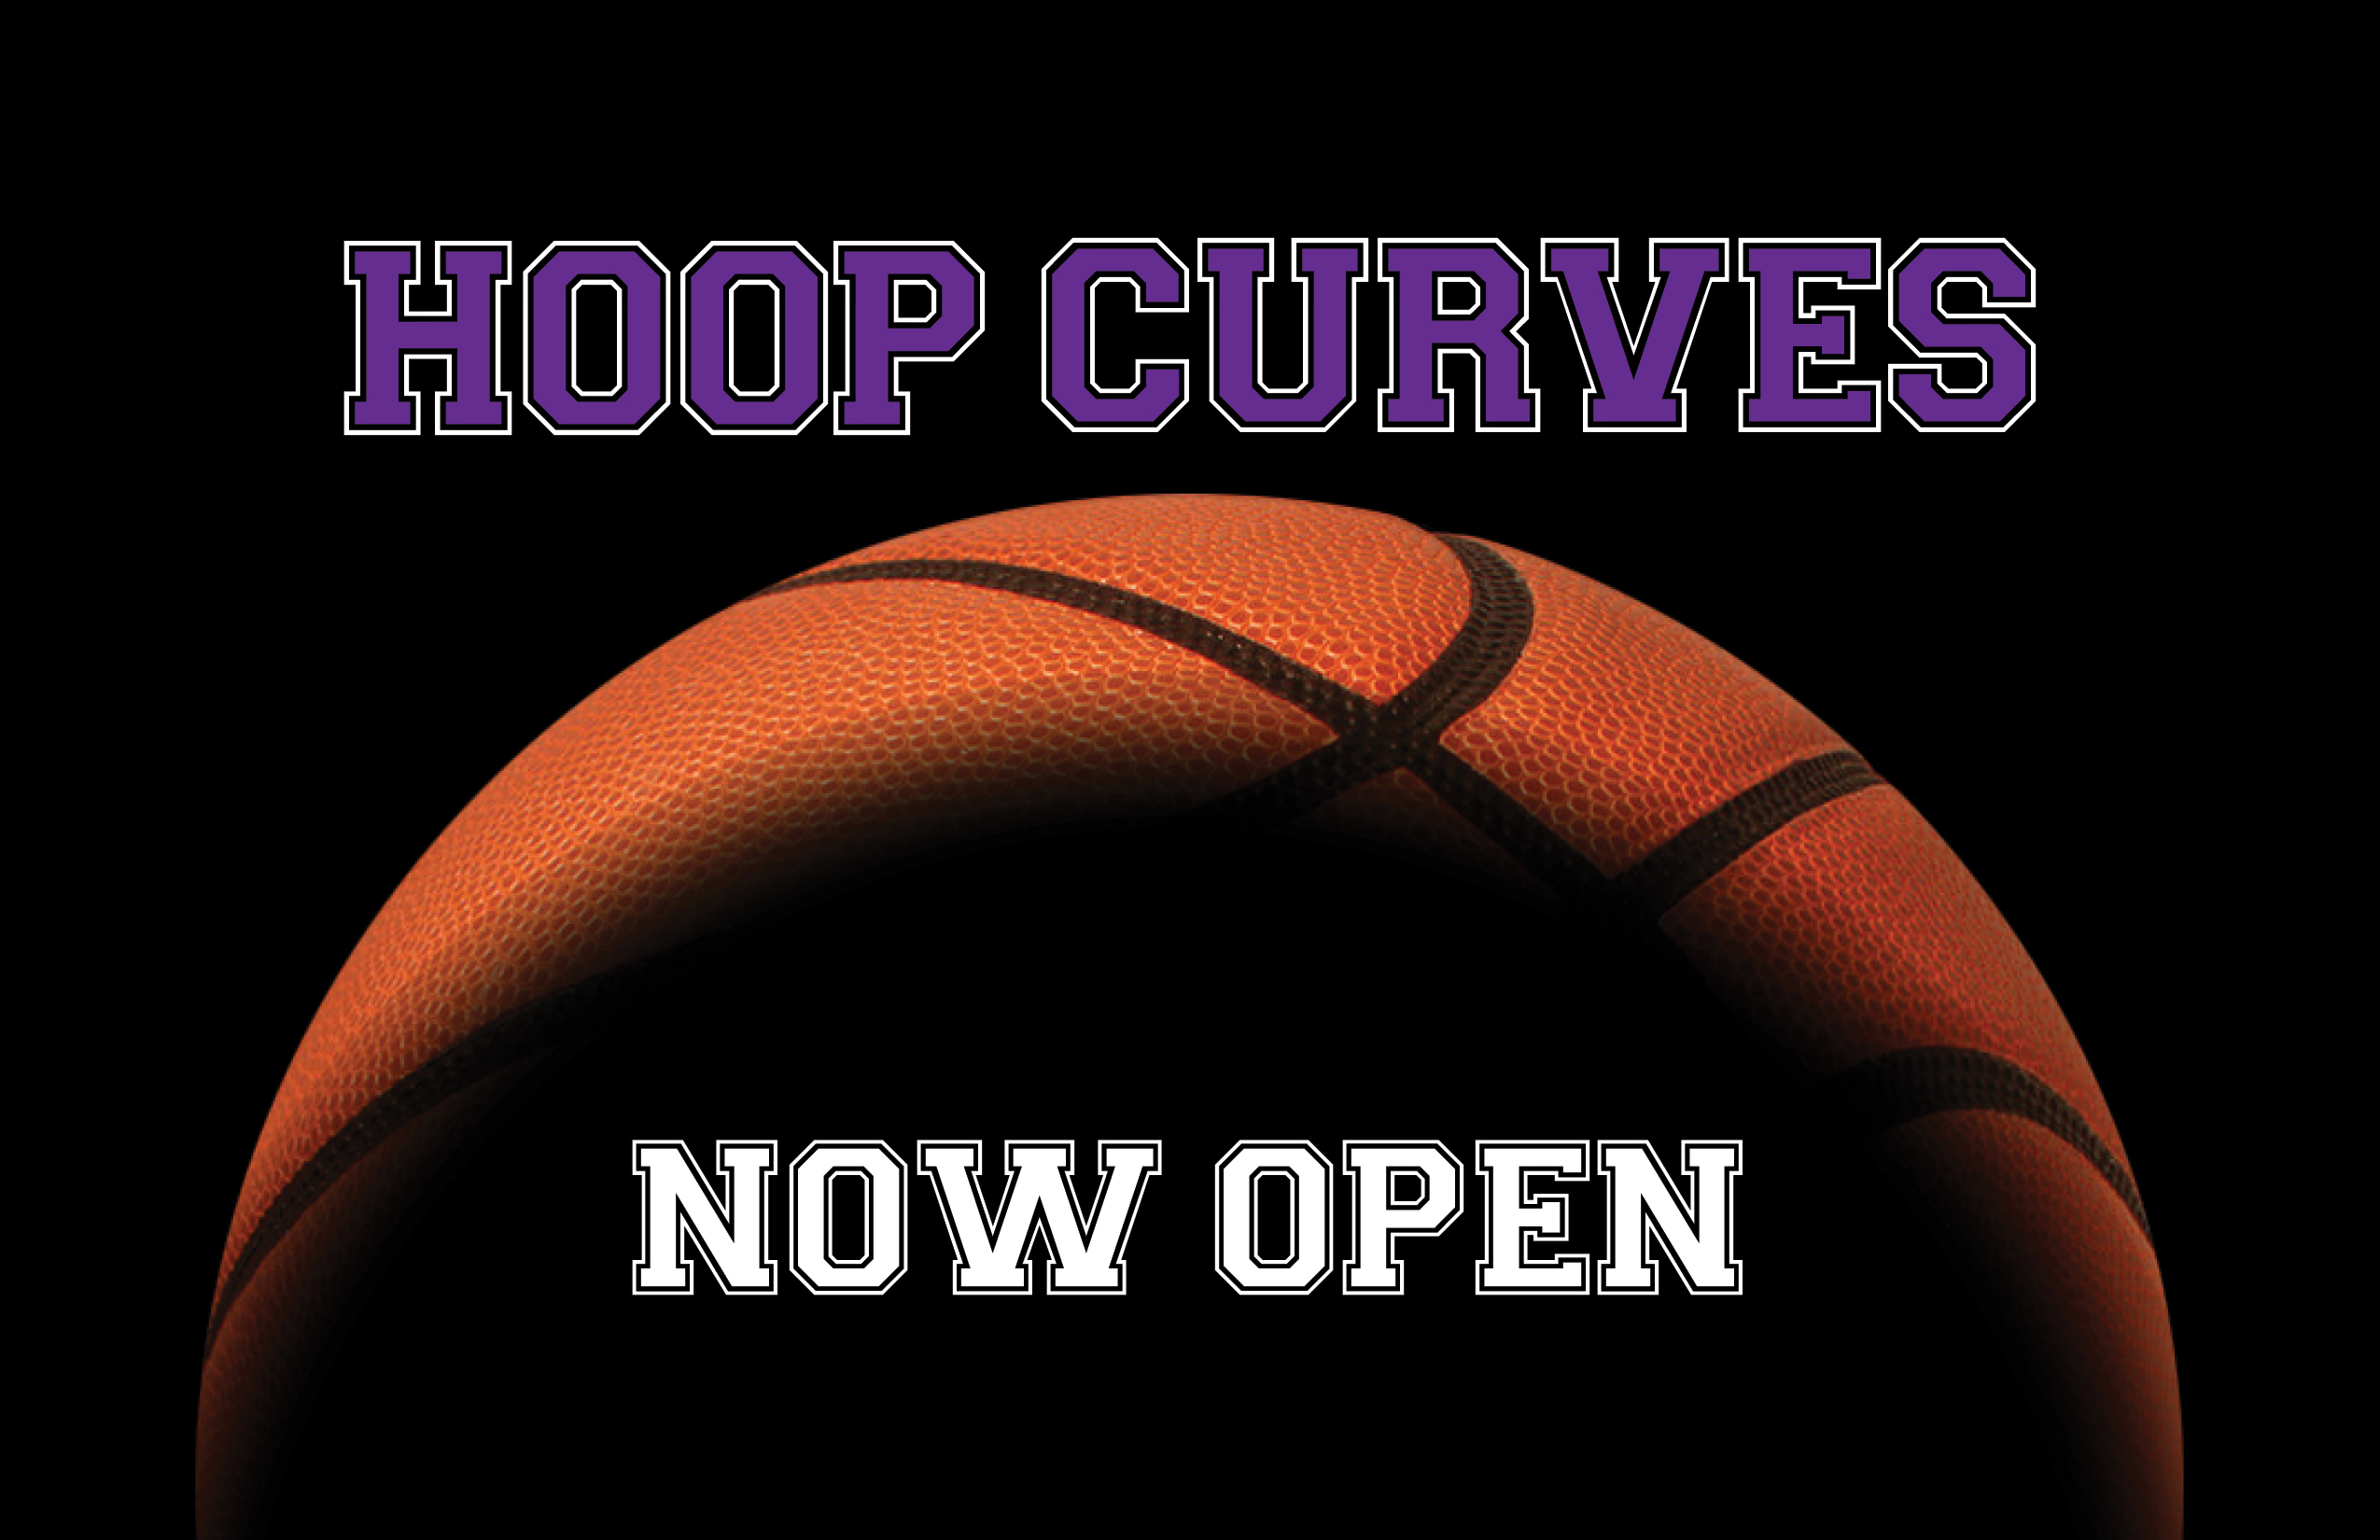 HoopCurves